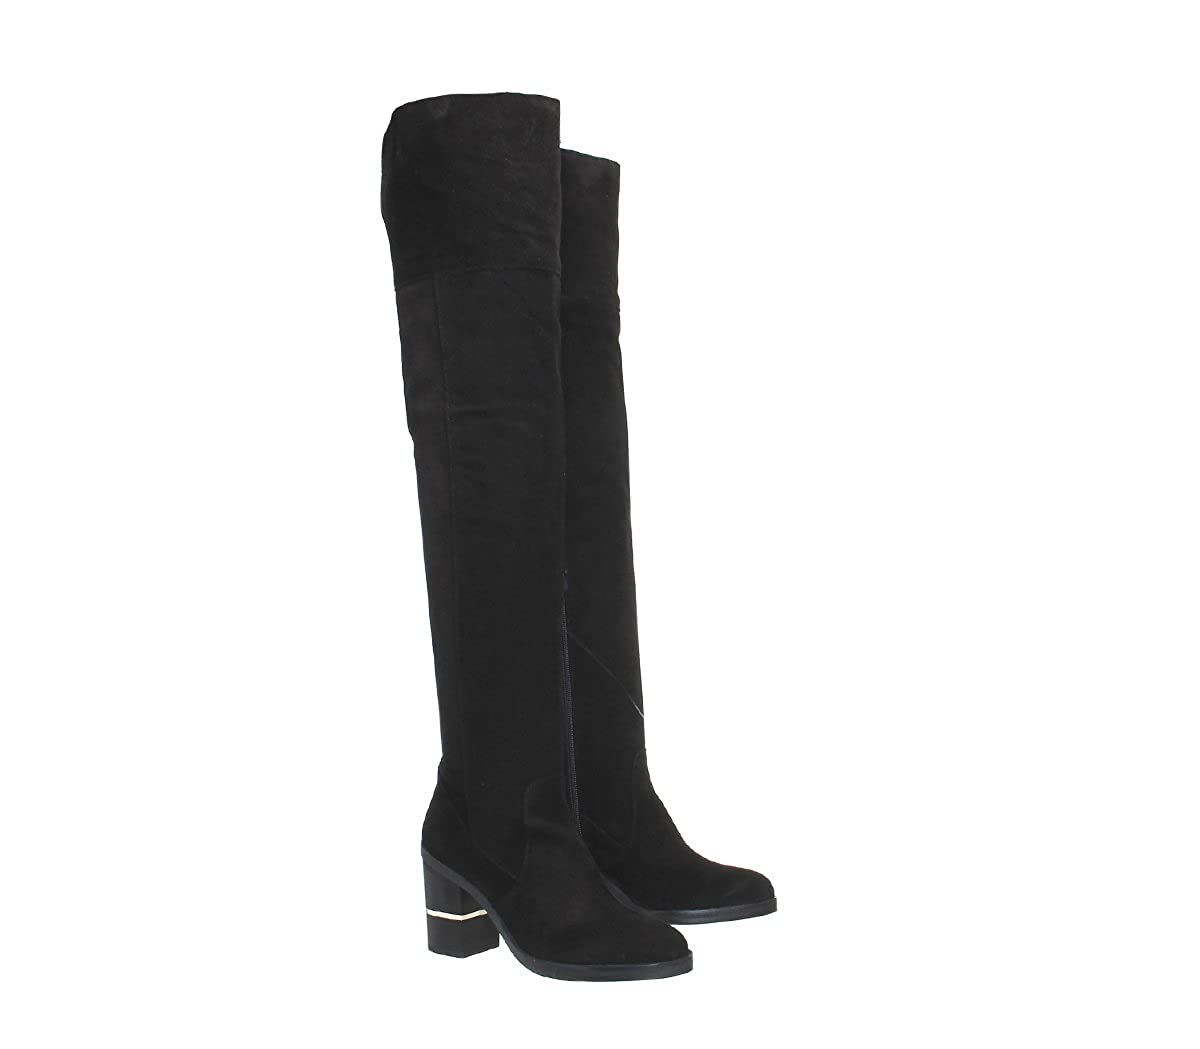 5a76e0d759b Office Elemental Over The Knee Boots Black Suede - 3 UK  Amazon.co.uk   Shoes   Bags